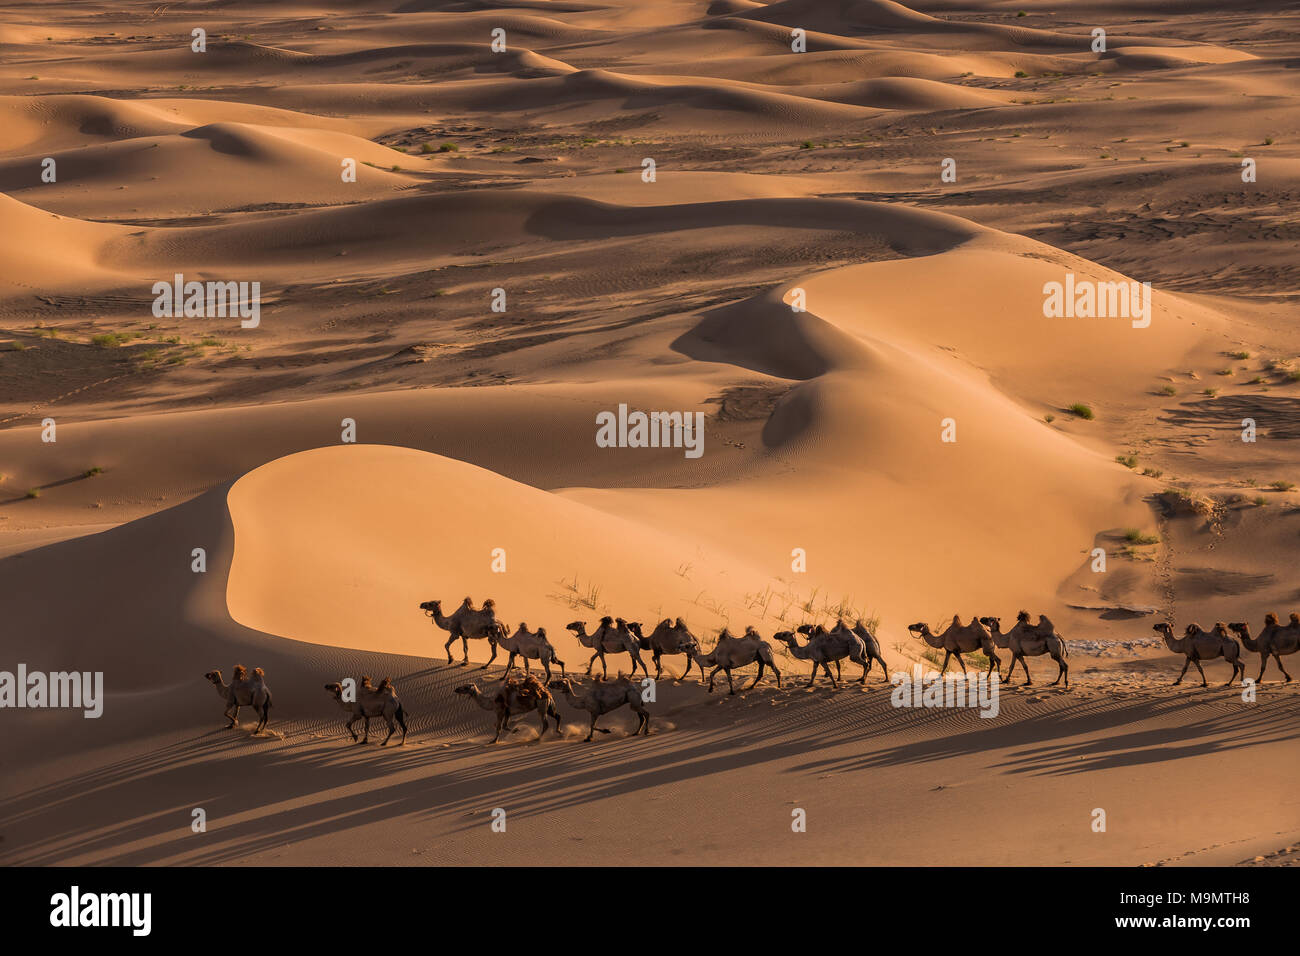 Flock of camels (Camelidae) walking through the vastness of sand dunes, Gobi desert, Mongolia - Stock Image